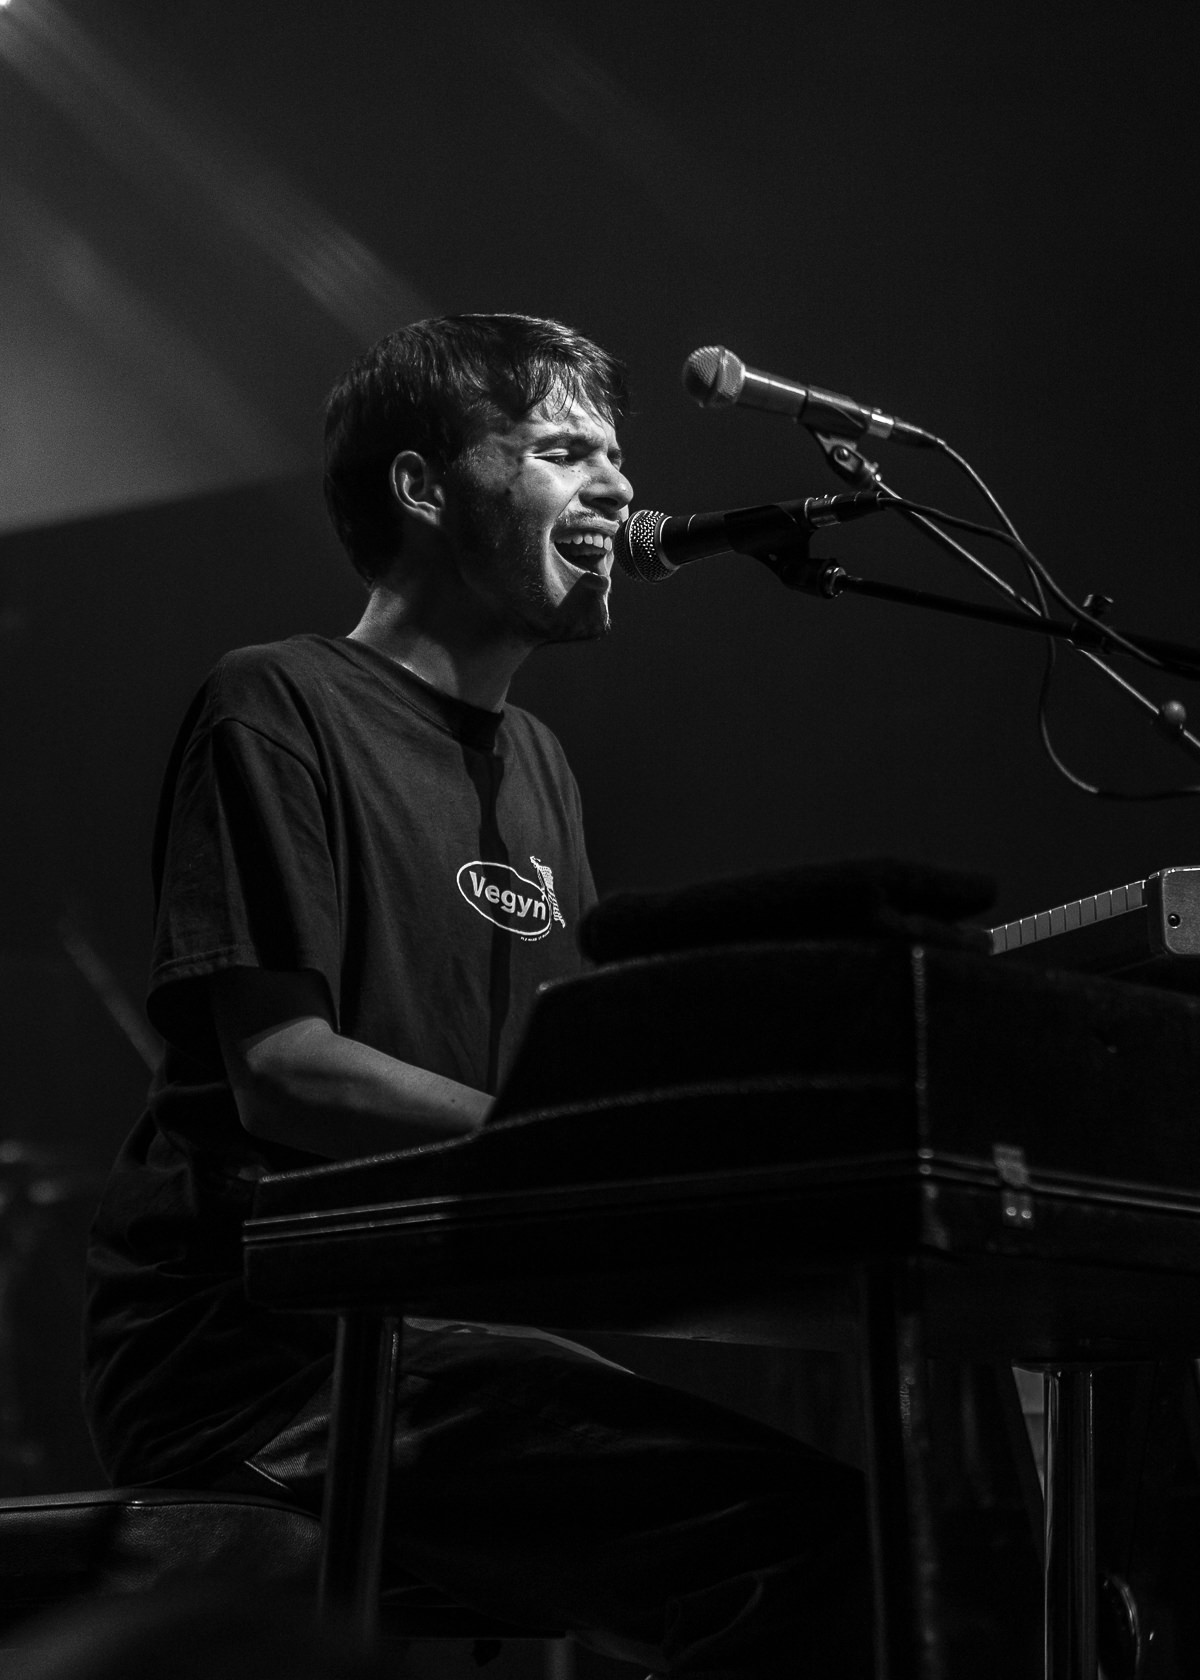 180813-kirby-gladstein-photography-rex-orange-county-concert-fonda-la-3678-3.jpg